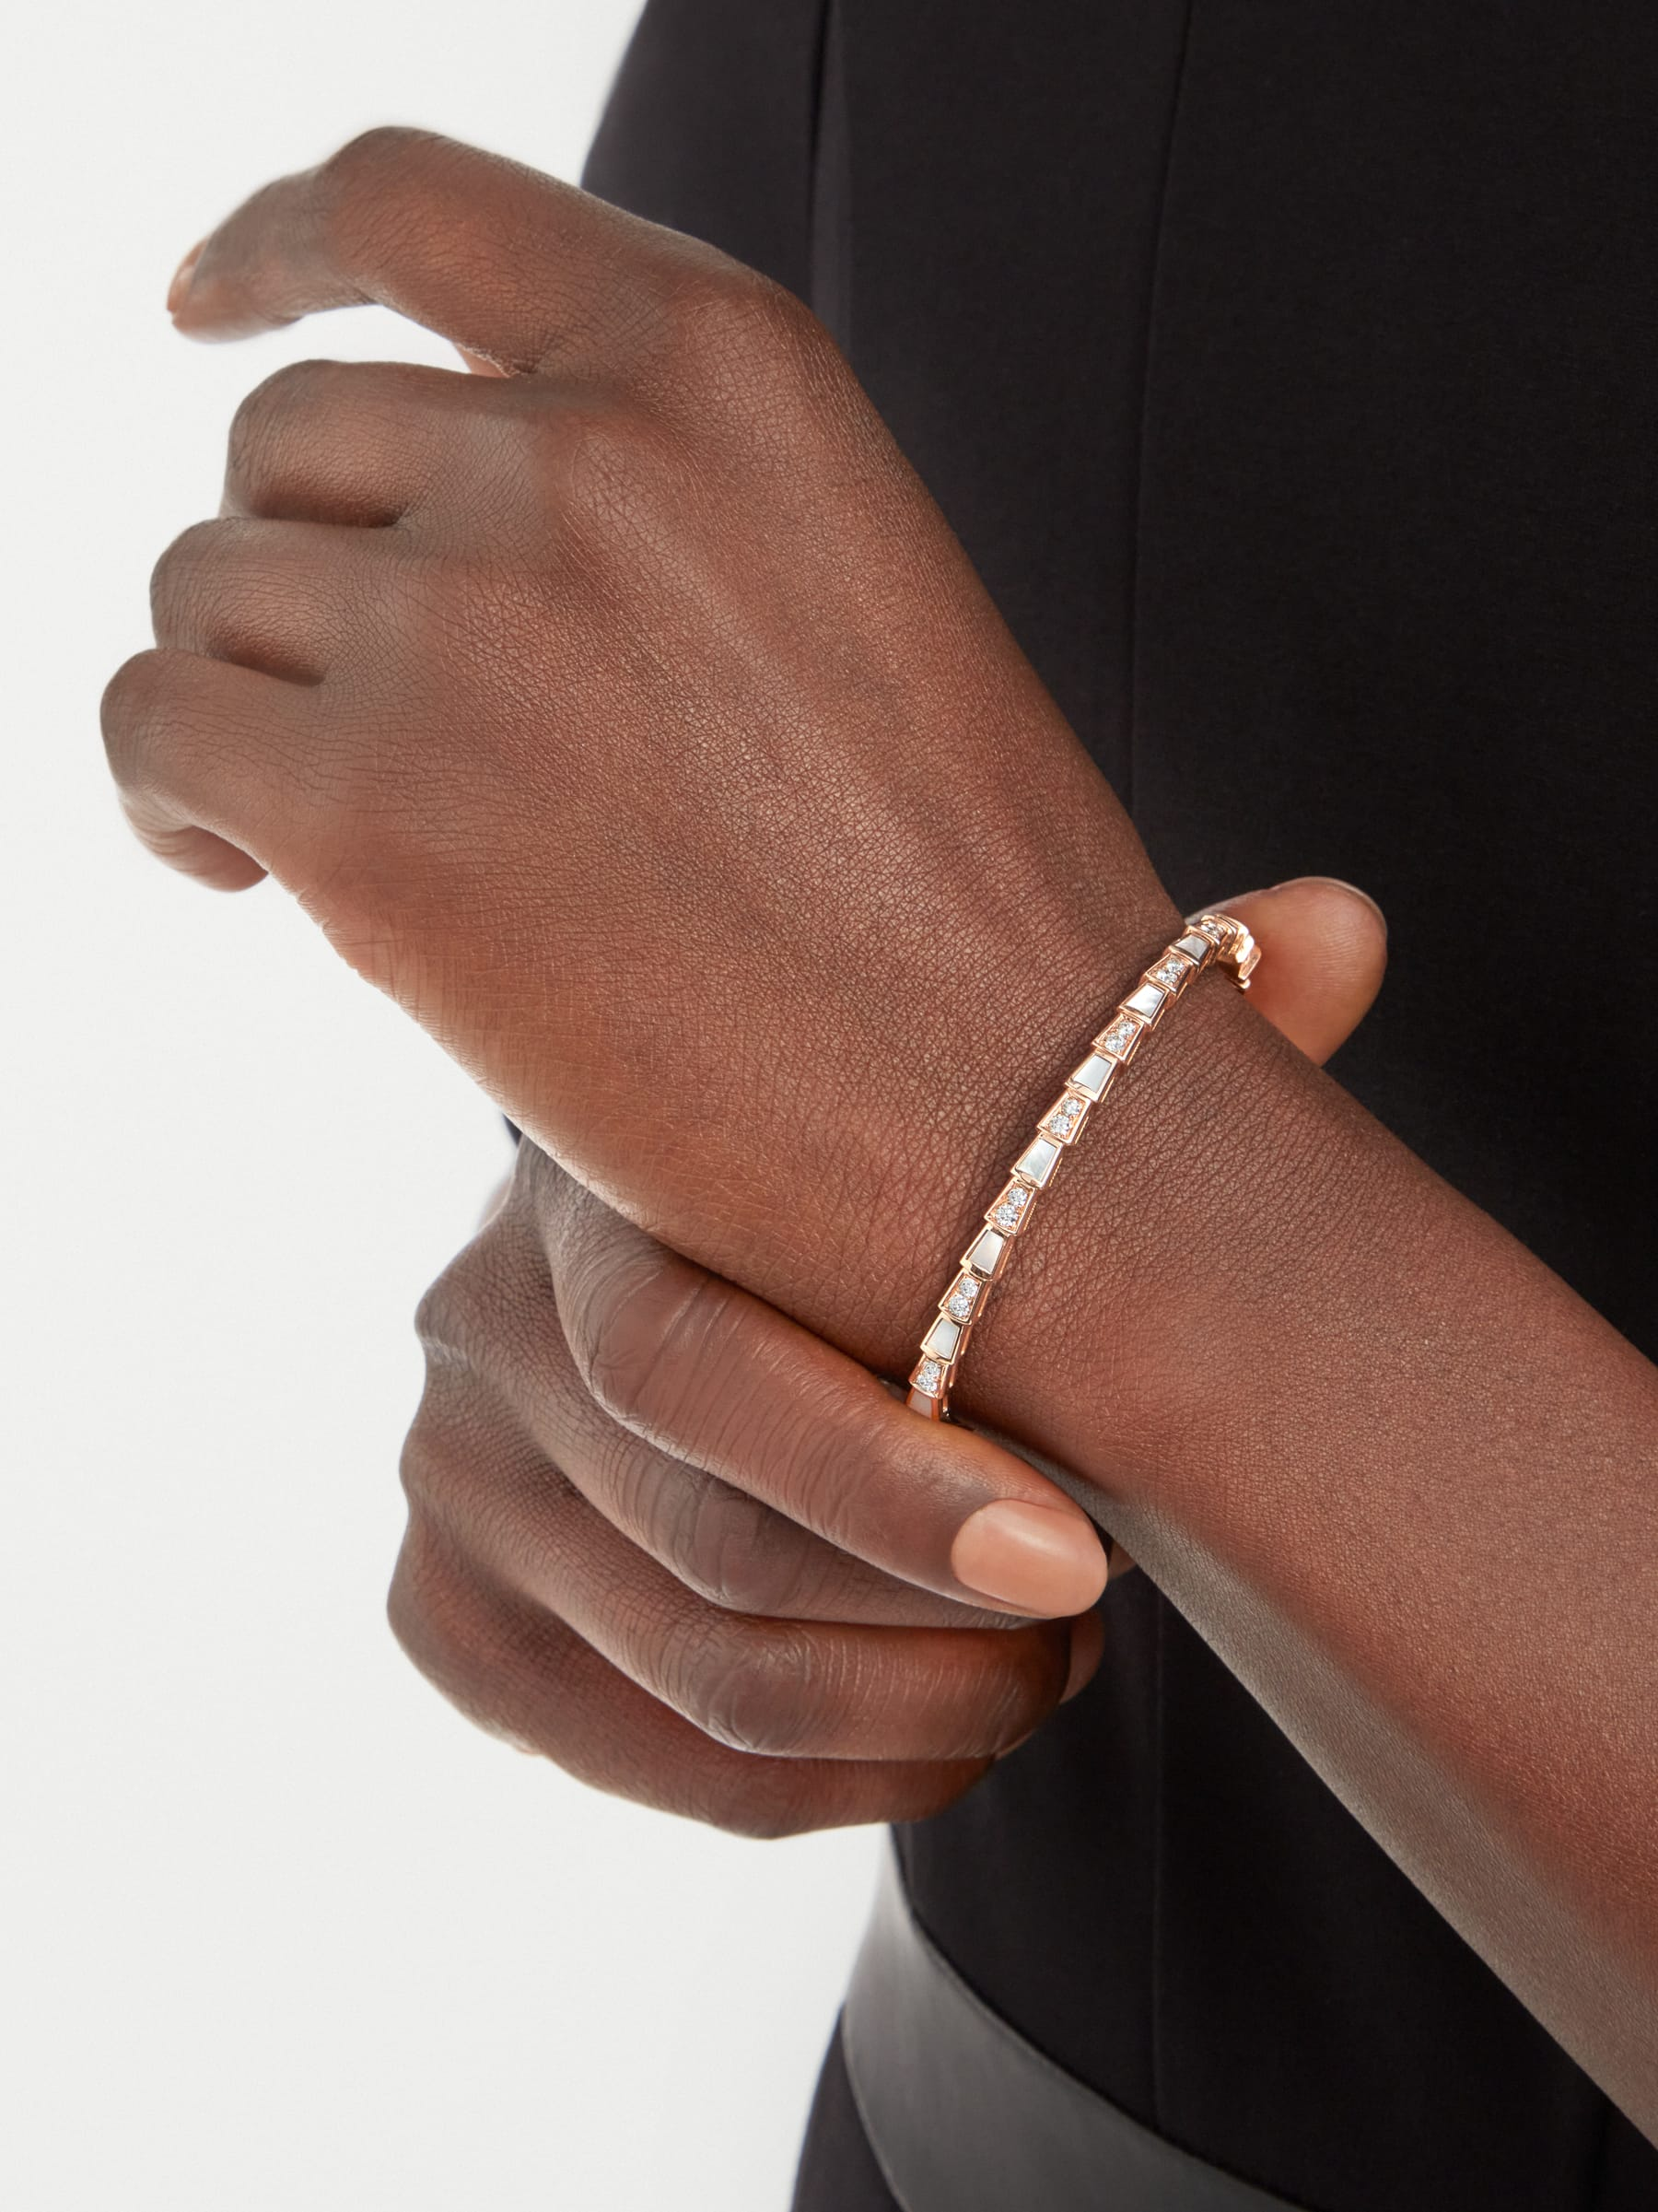 Serpenti Viper 18 kt rose gold bracelet set with mother-of-pearl elements and pavé diamonds BR858356 image 1